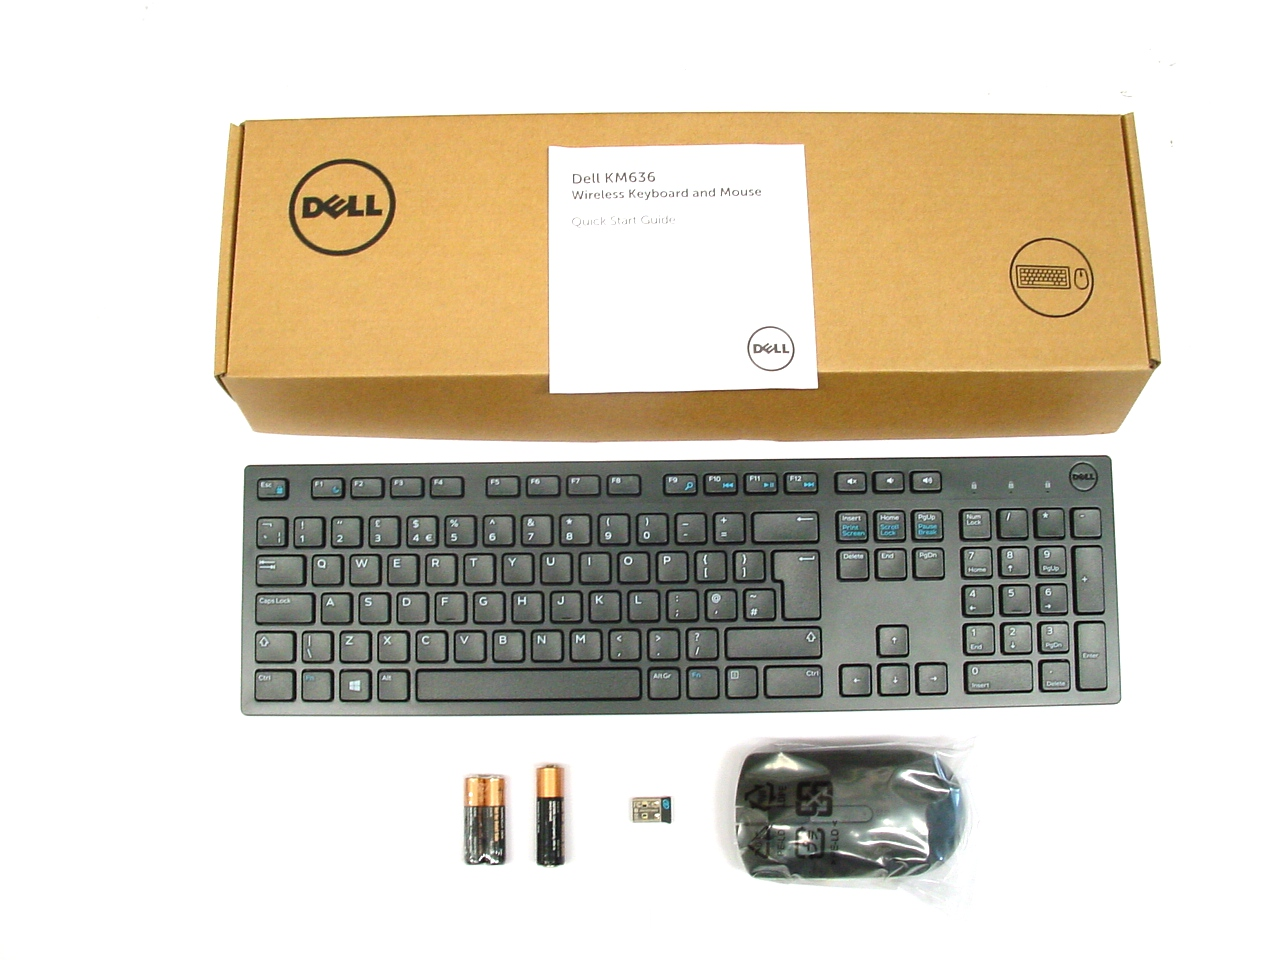 dell km636 wireless cordless keyboard and mouse set combo kit uk layout 580 adfz ebay. Black Bedroom Furniture Sets. Home Design Ideas